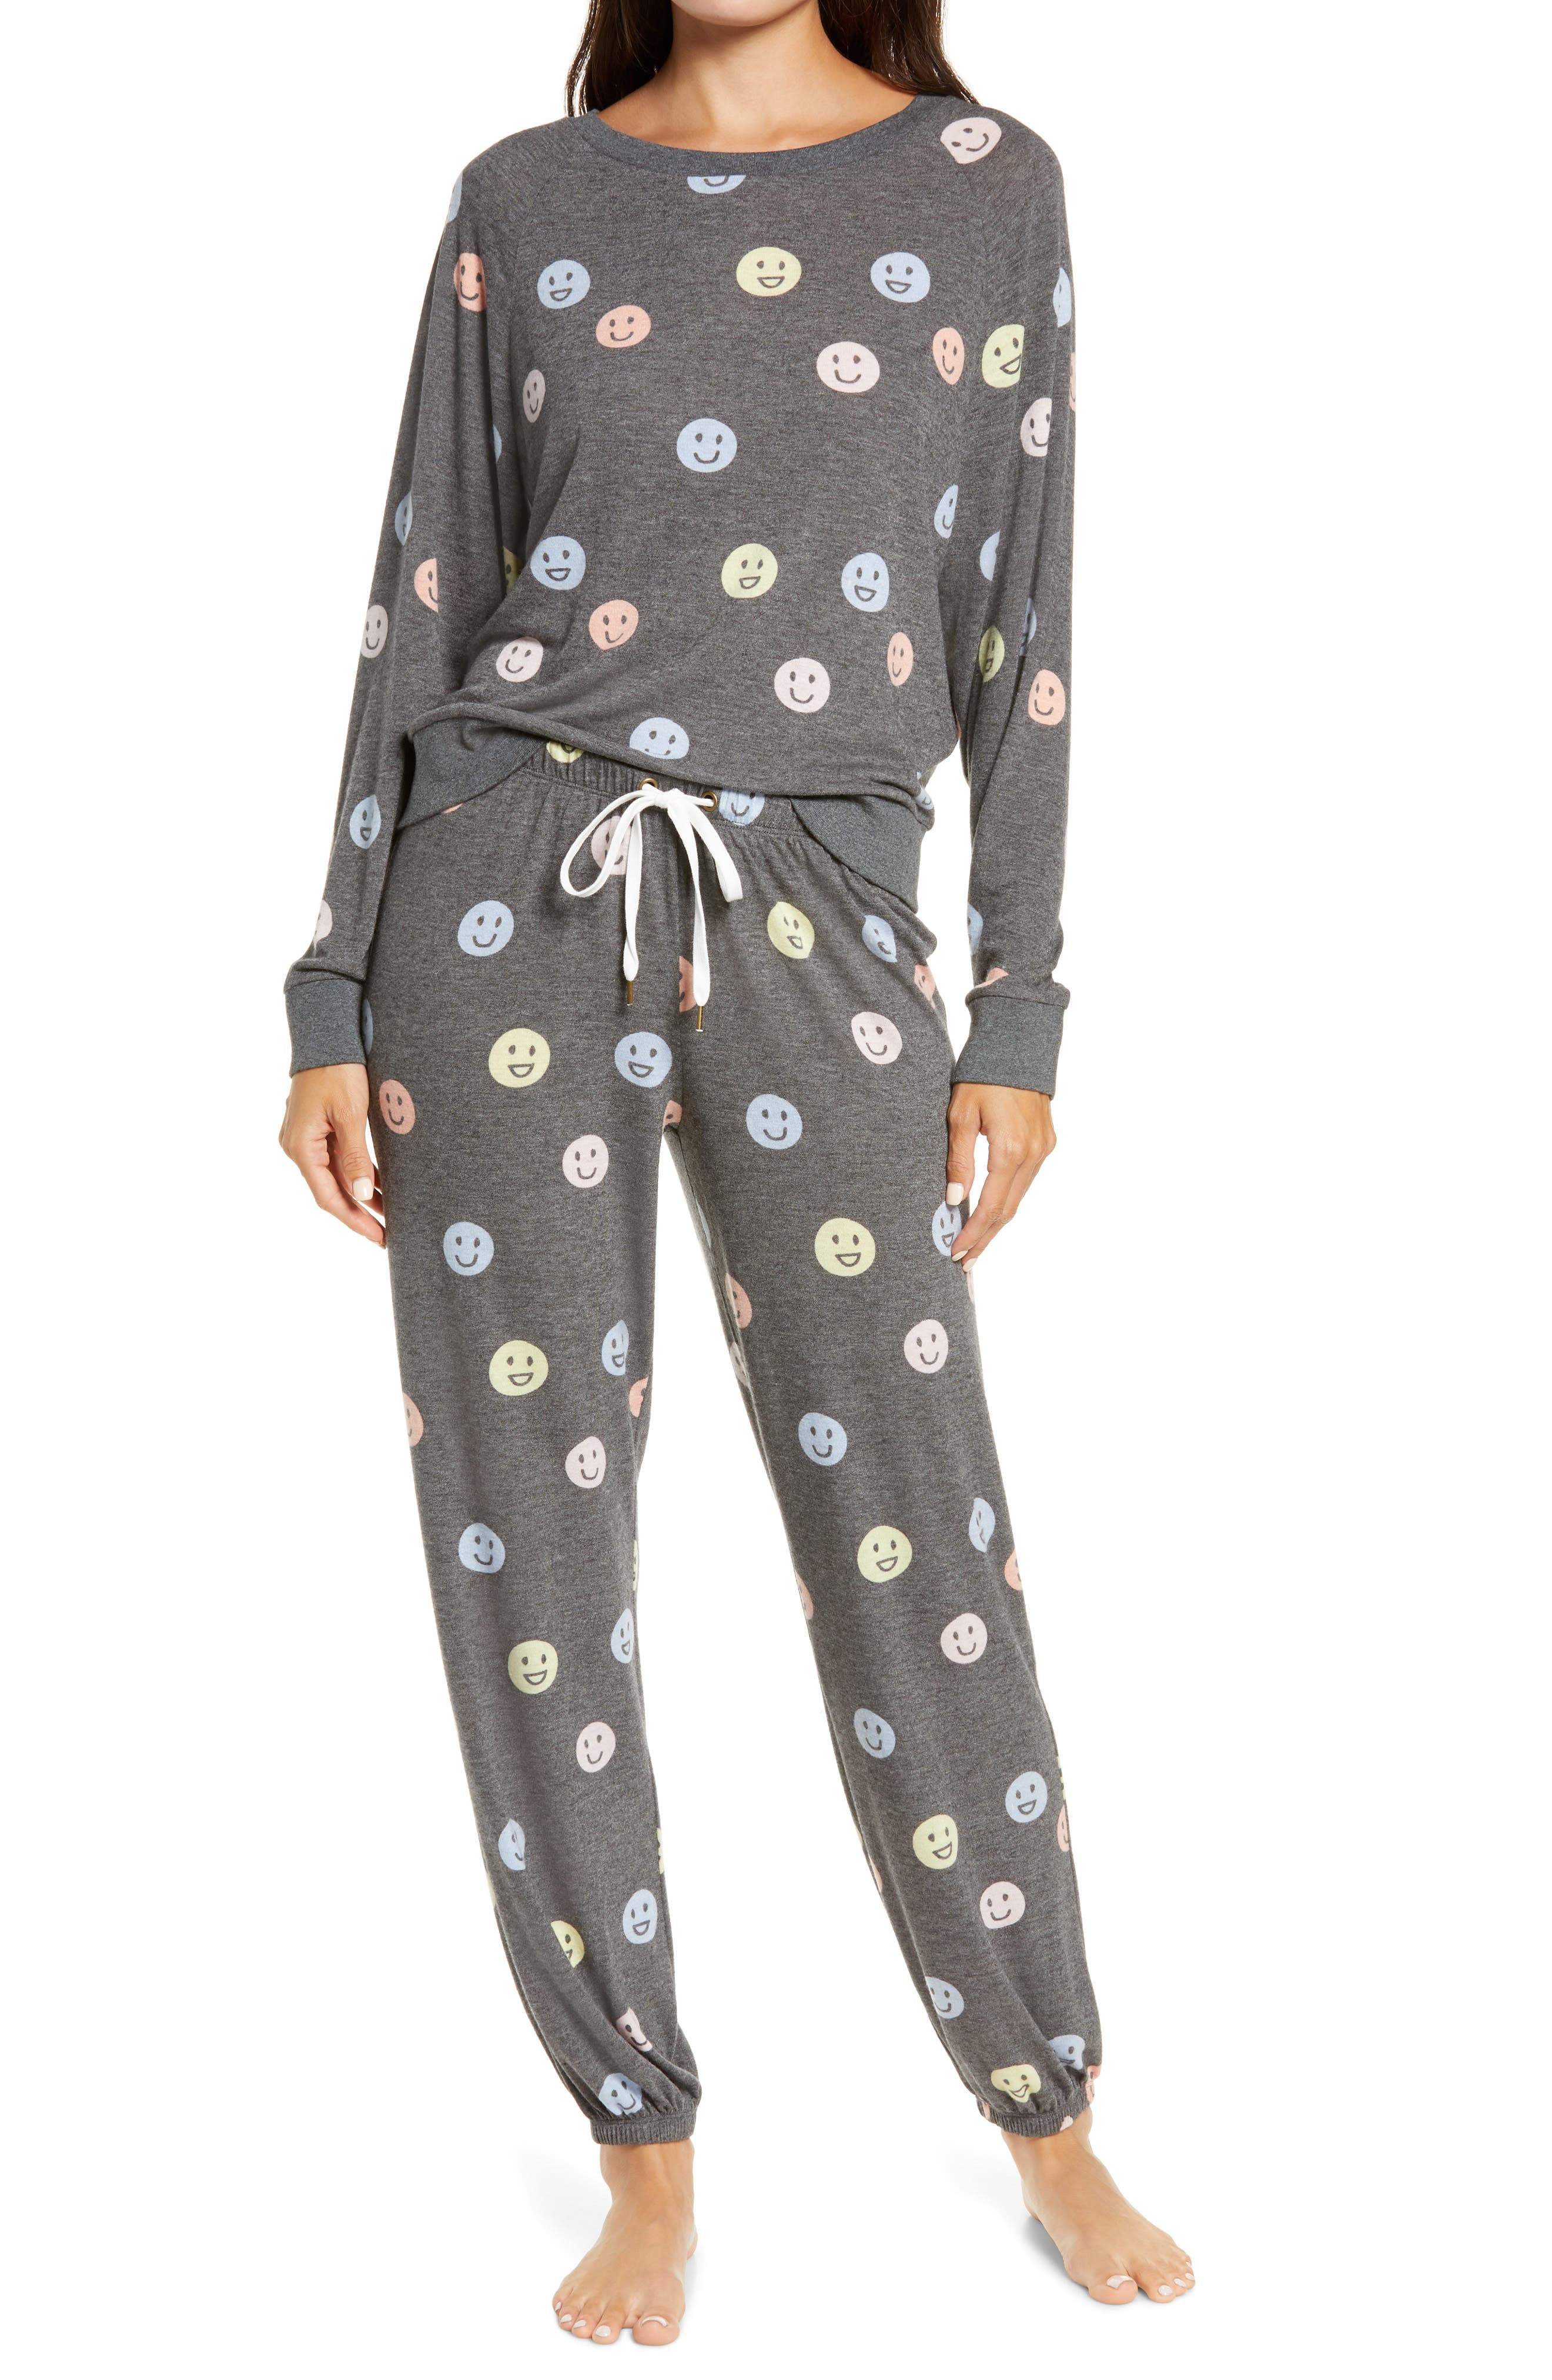 These soft brushed-jersey pajamas will not have to invite you twice to enjoy their luxe, lounge-all-day comfort. Style Name: Honeydew Intimates Star Seeker Brushed Jersey Pajamas. Style Number: 5905206. Available in stores.